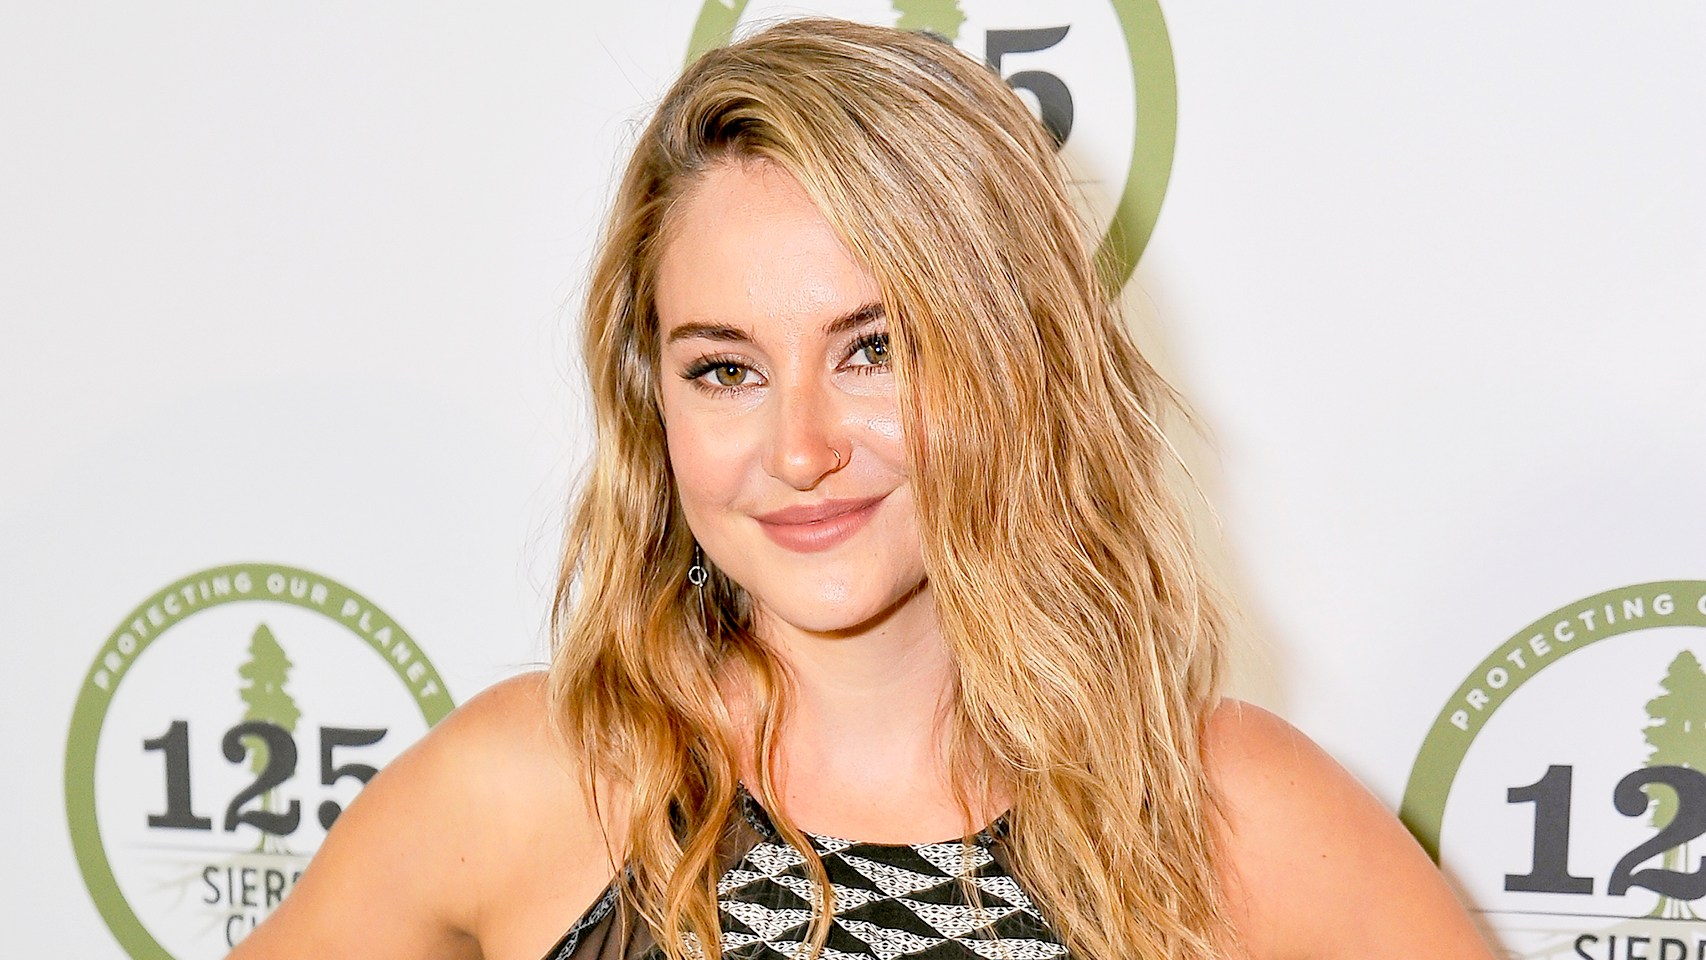 Shailene Woodley attends Sierra Club's 125th Anniversary Trail Blazers Ball at the Palace of Fine Arts on May 18, 2017 in San Francisco, California.